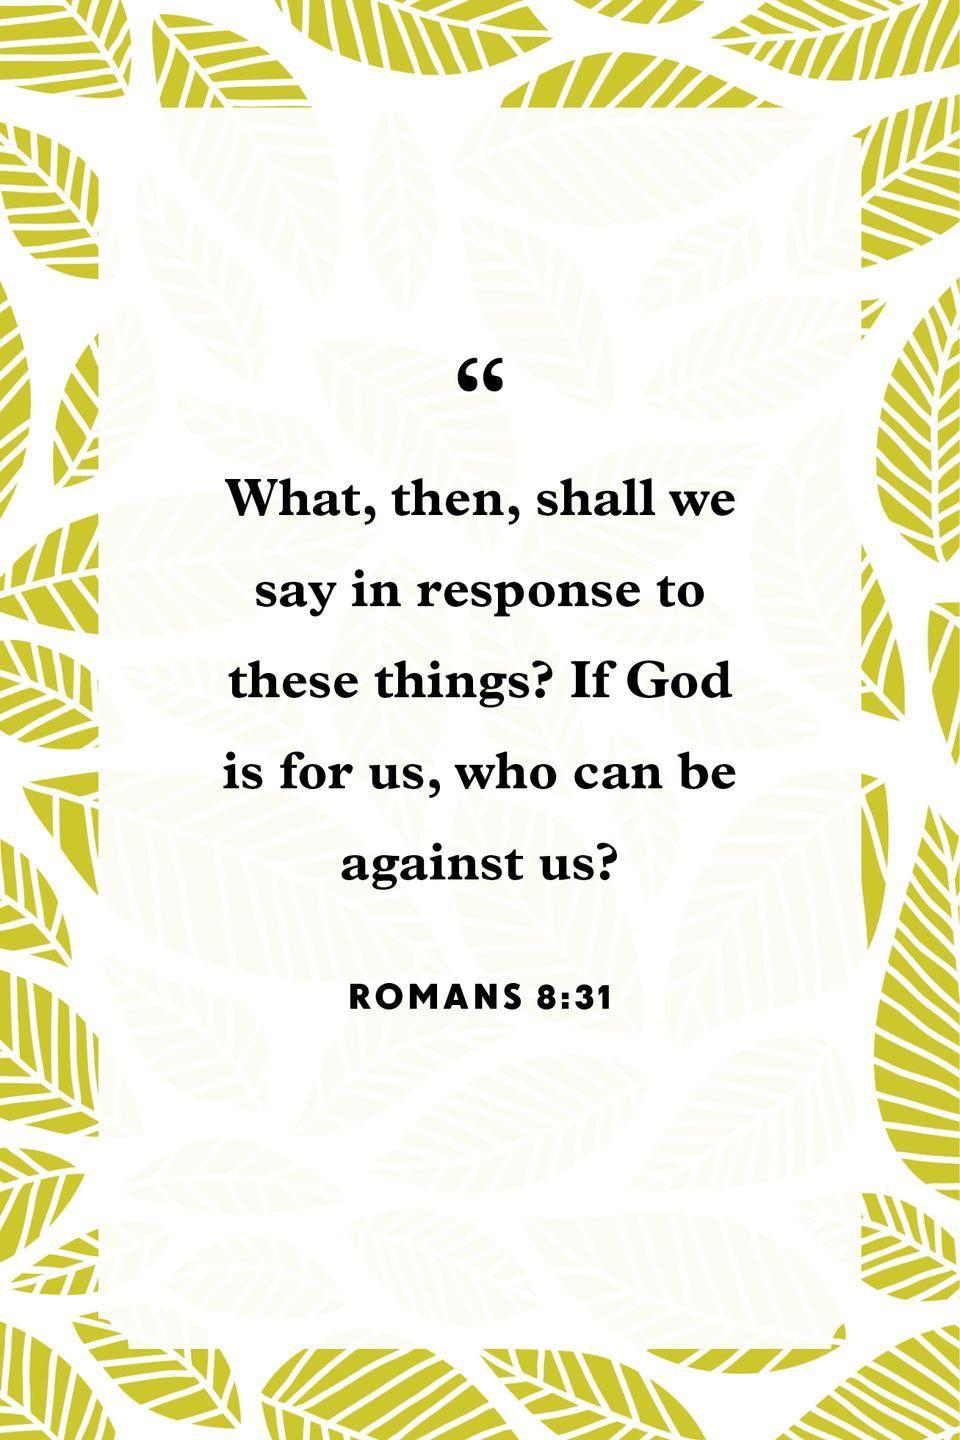 "<p>""What, then, shall we say in response to these things? If God is for us, who can be against us?""</p>"